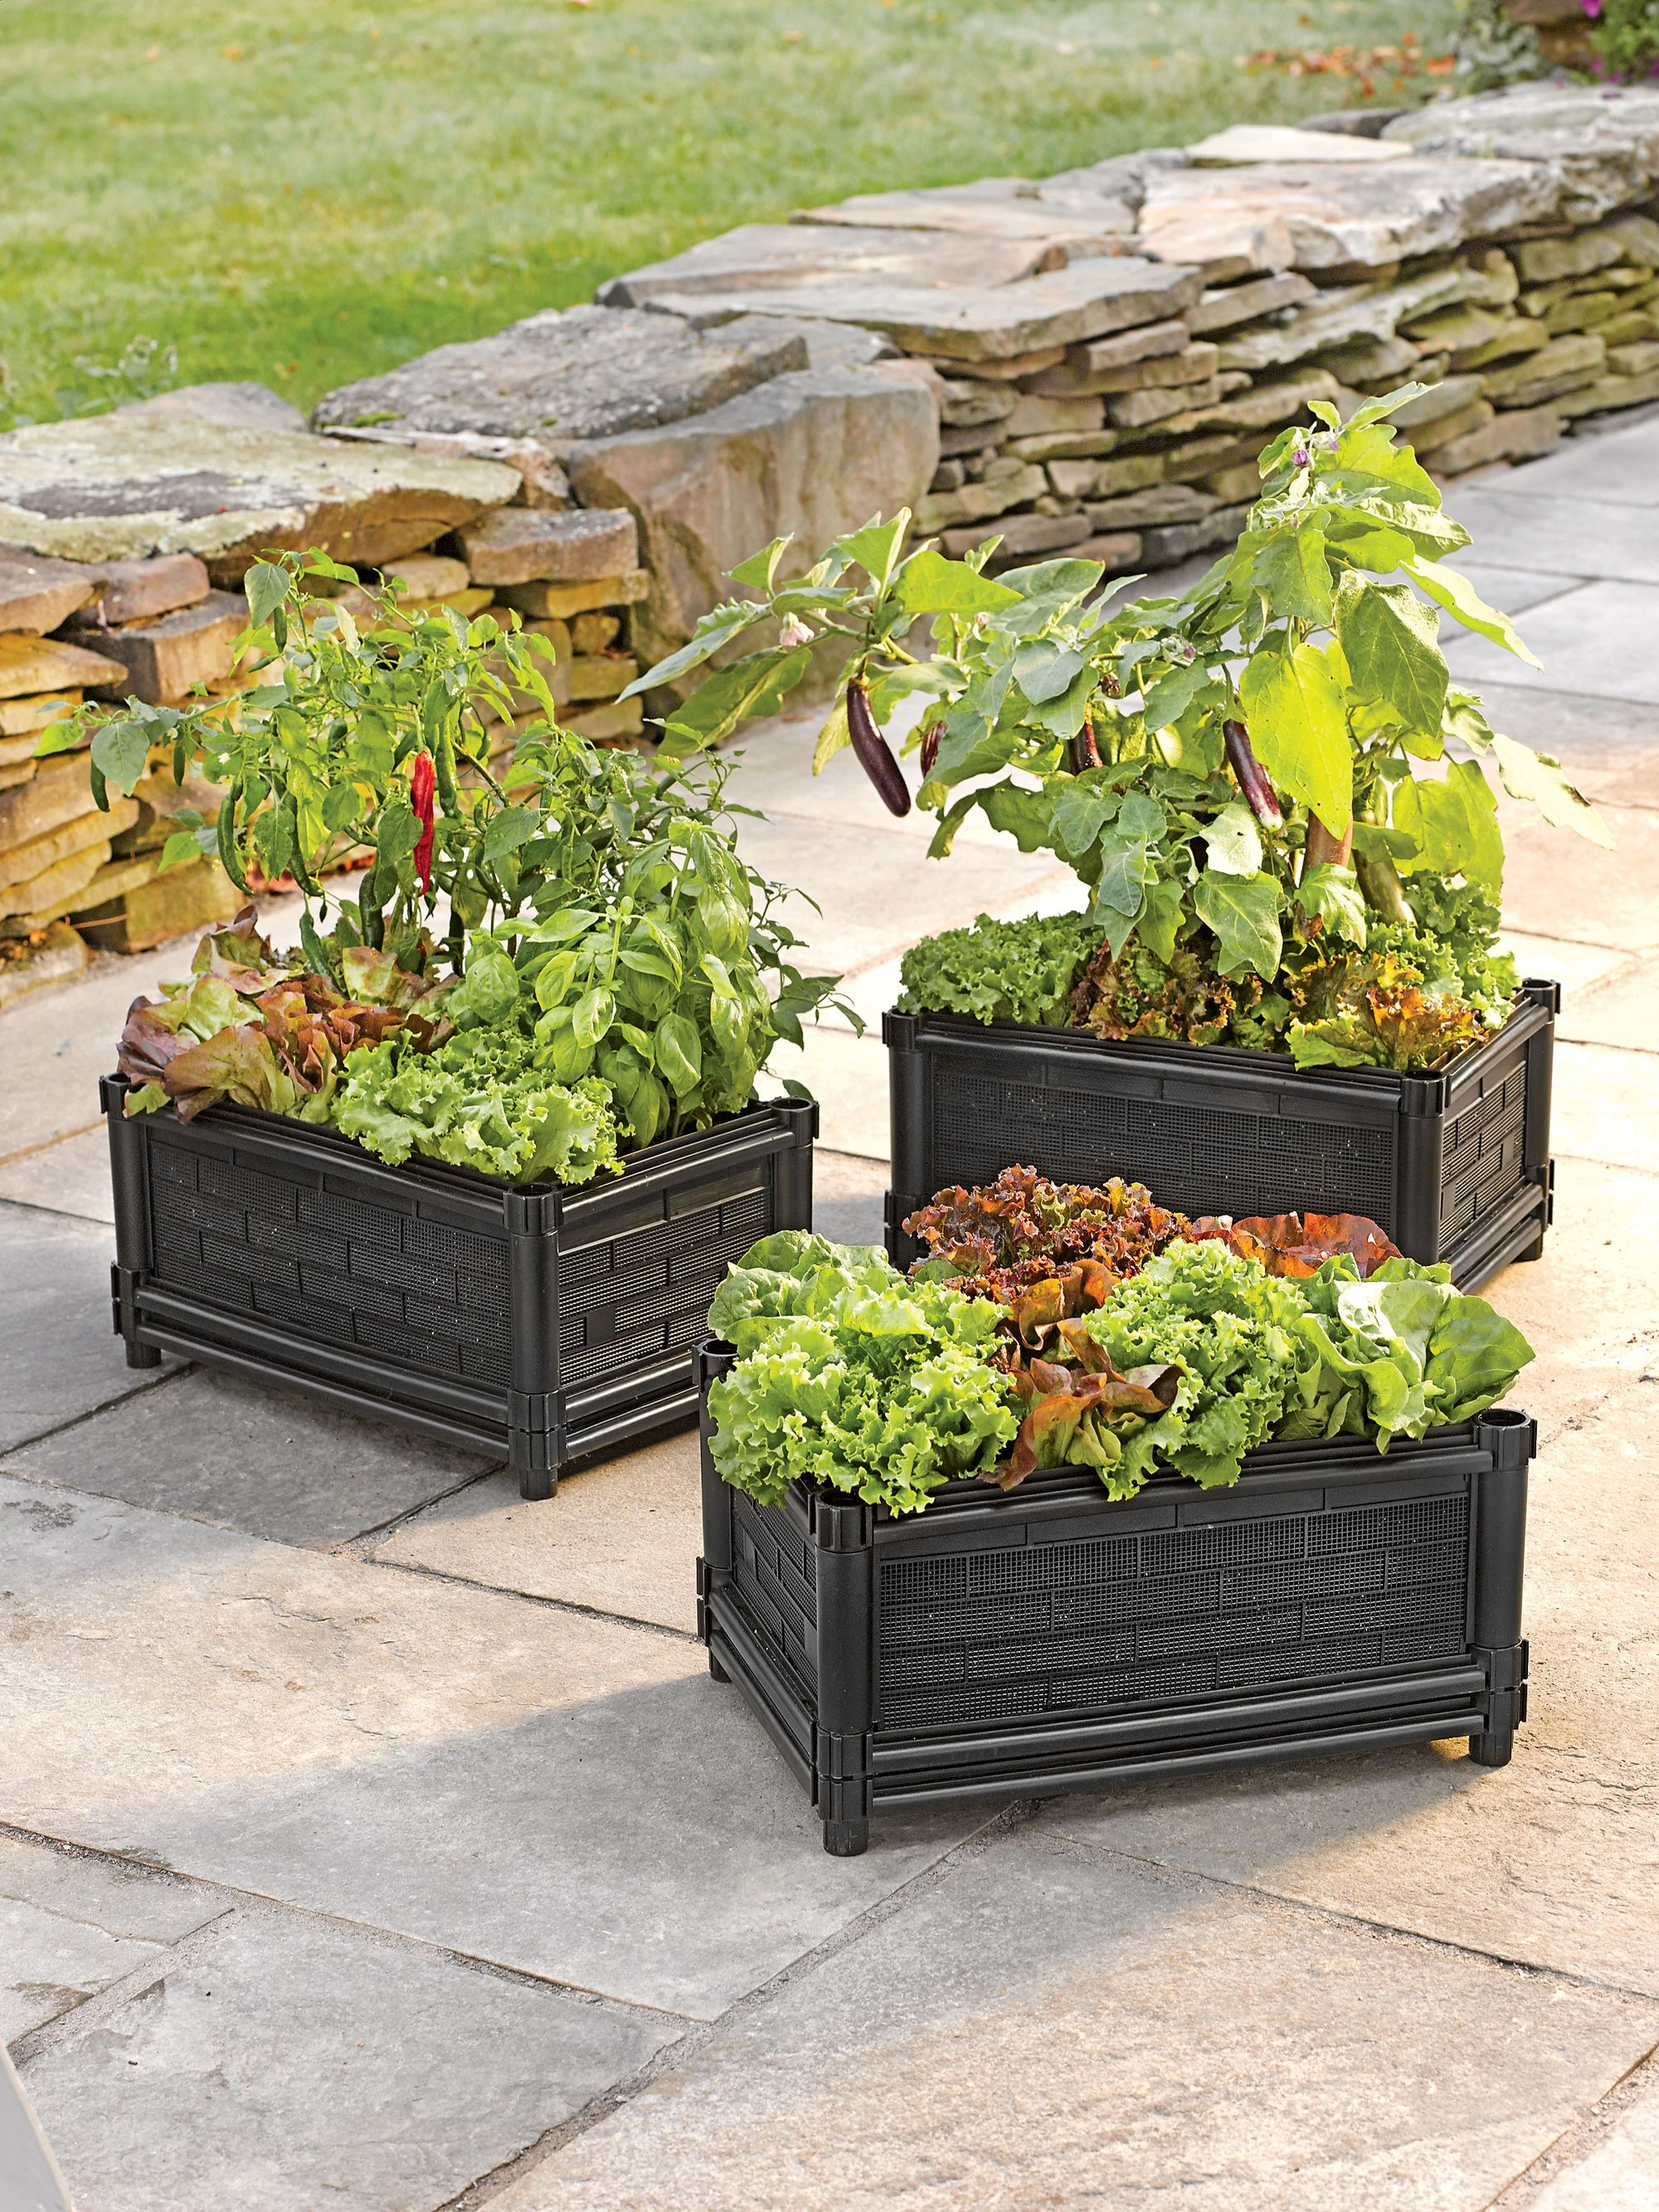 Veg Grow Box For Balcony, Stoop Or Patio Gardening -